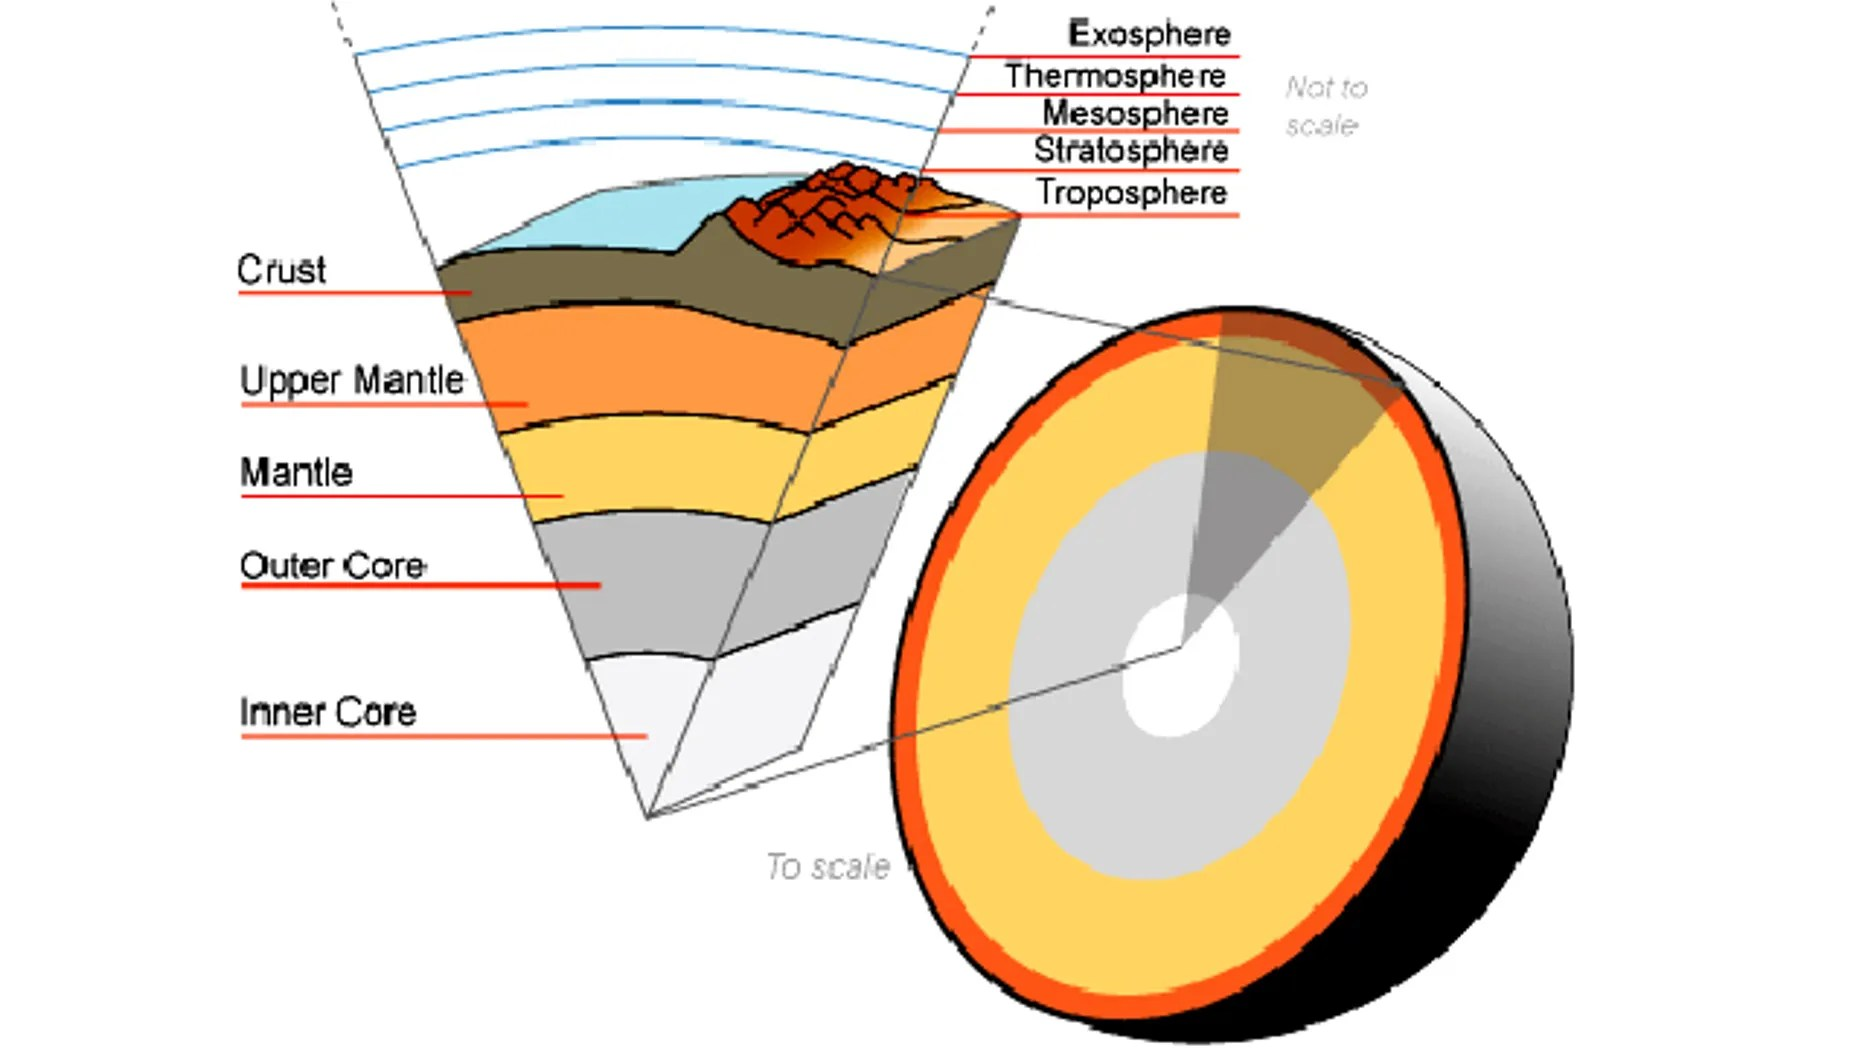 small resolution of a cutaway illustration showing the earth s atmosphere and various inner layers